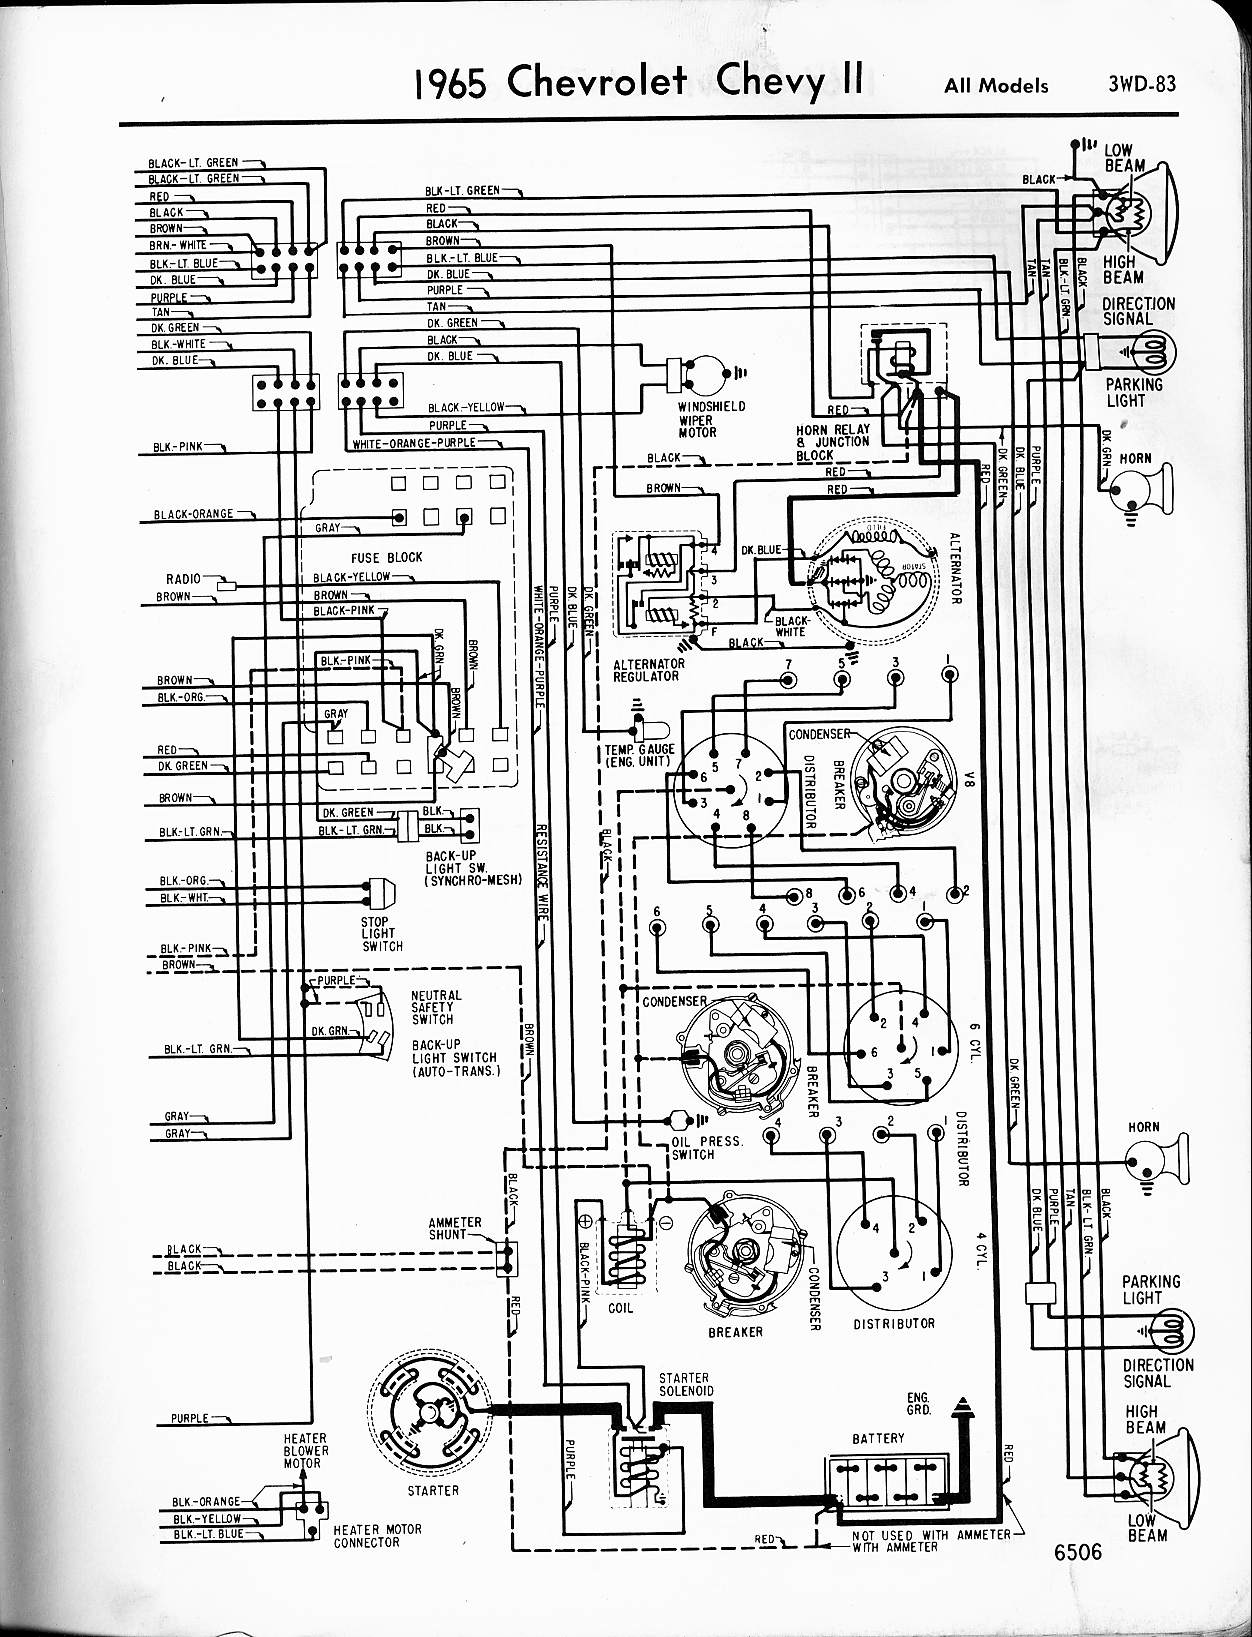 MWireChev65_3WD 083 chevy diagrams 1971 corvette wiring diagram at panicattacktreatment.co